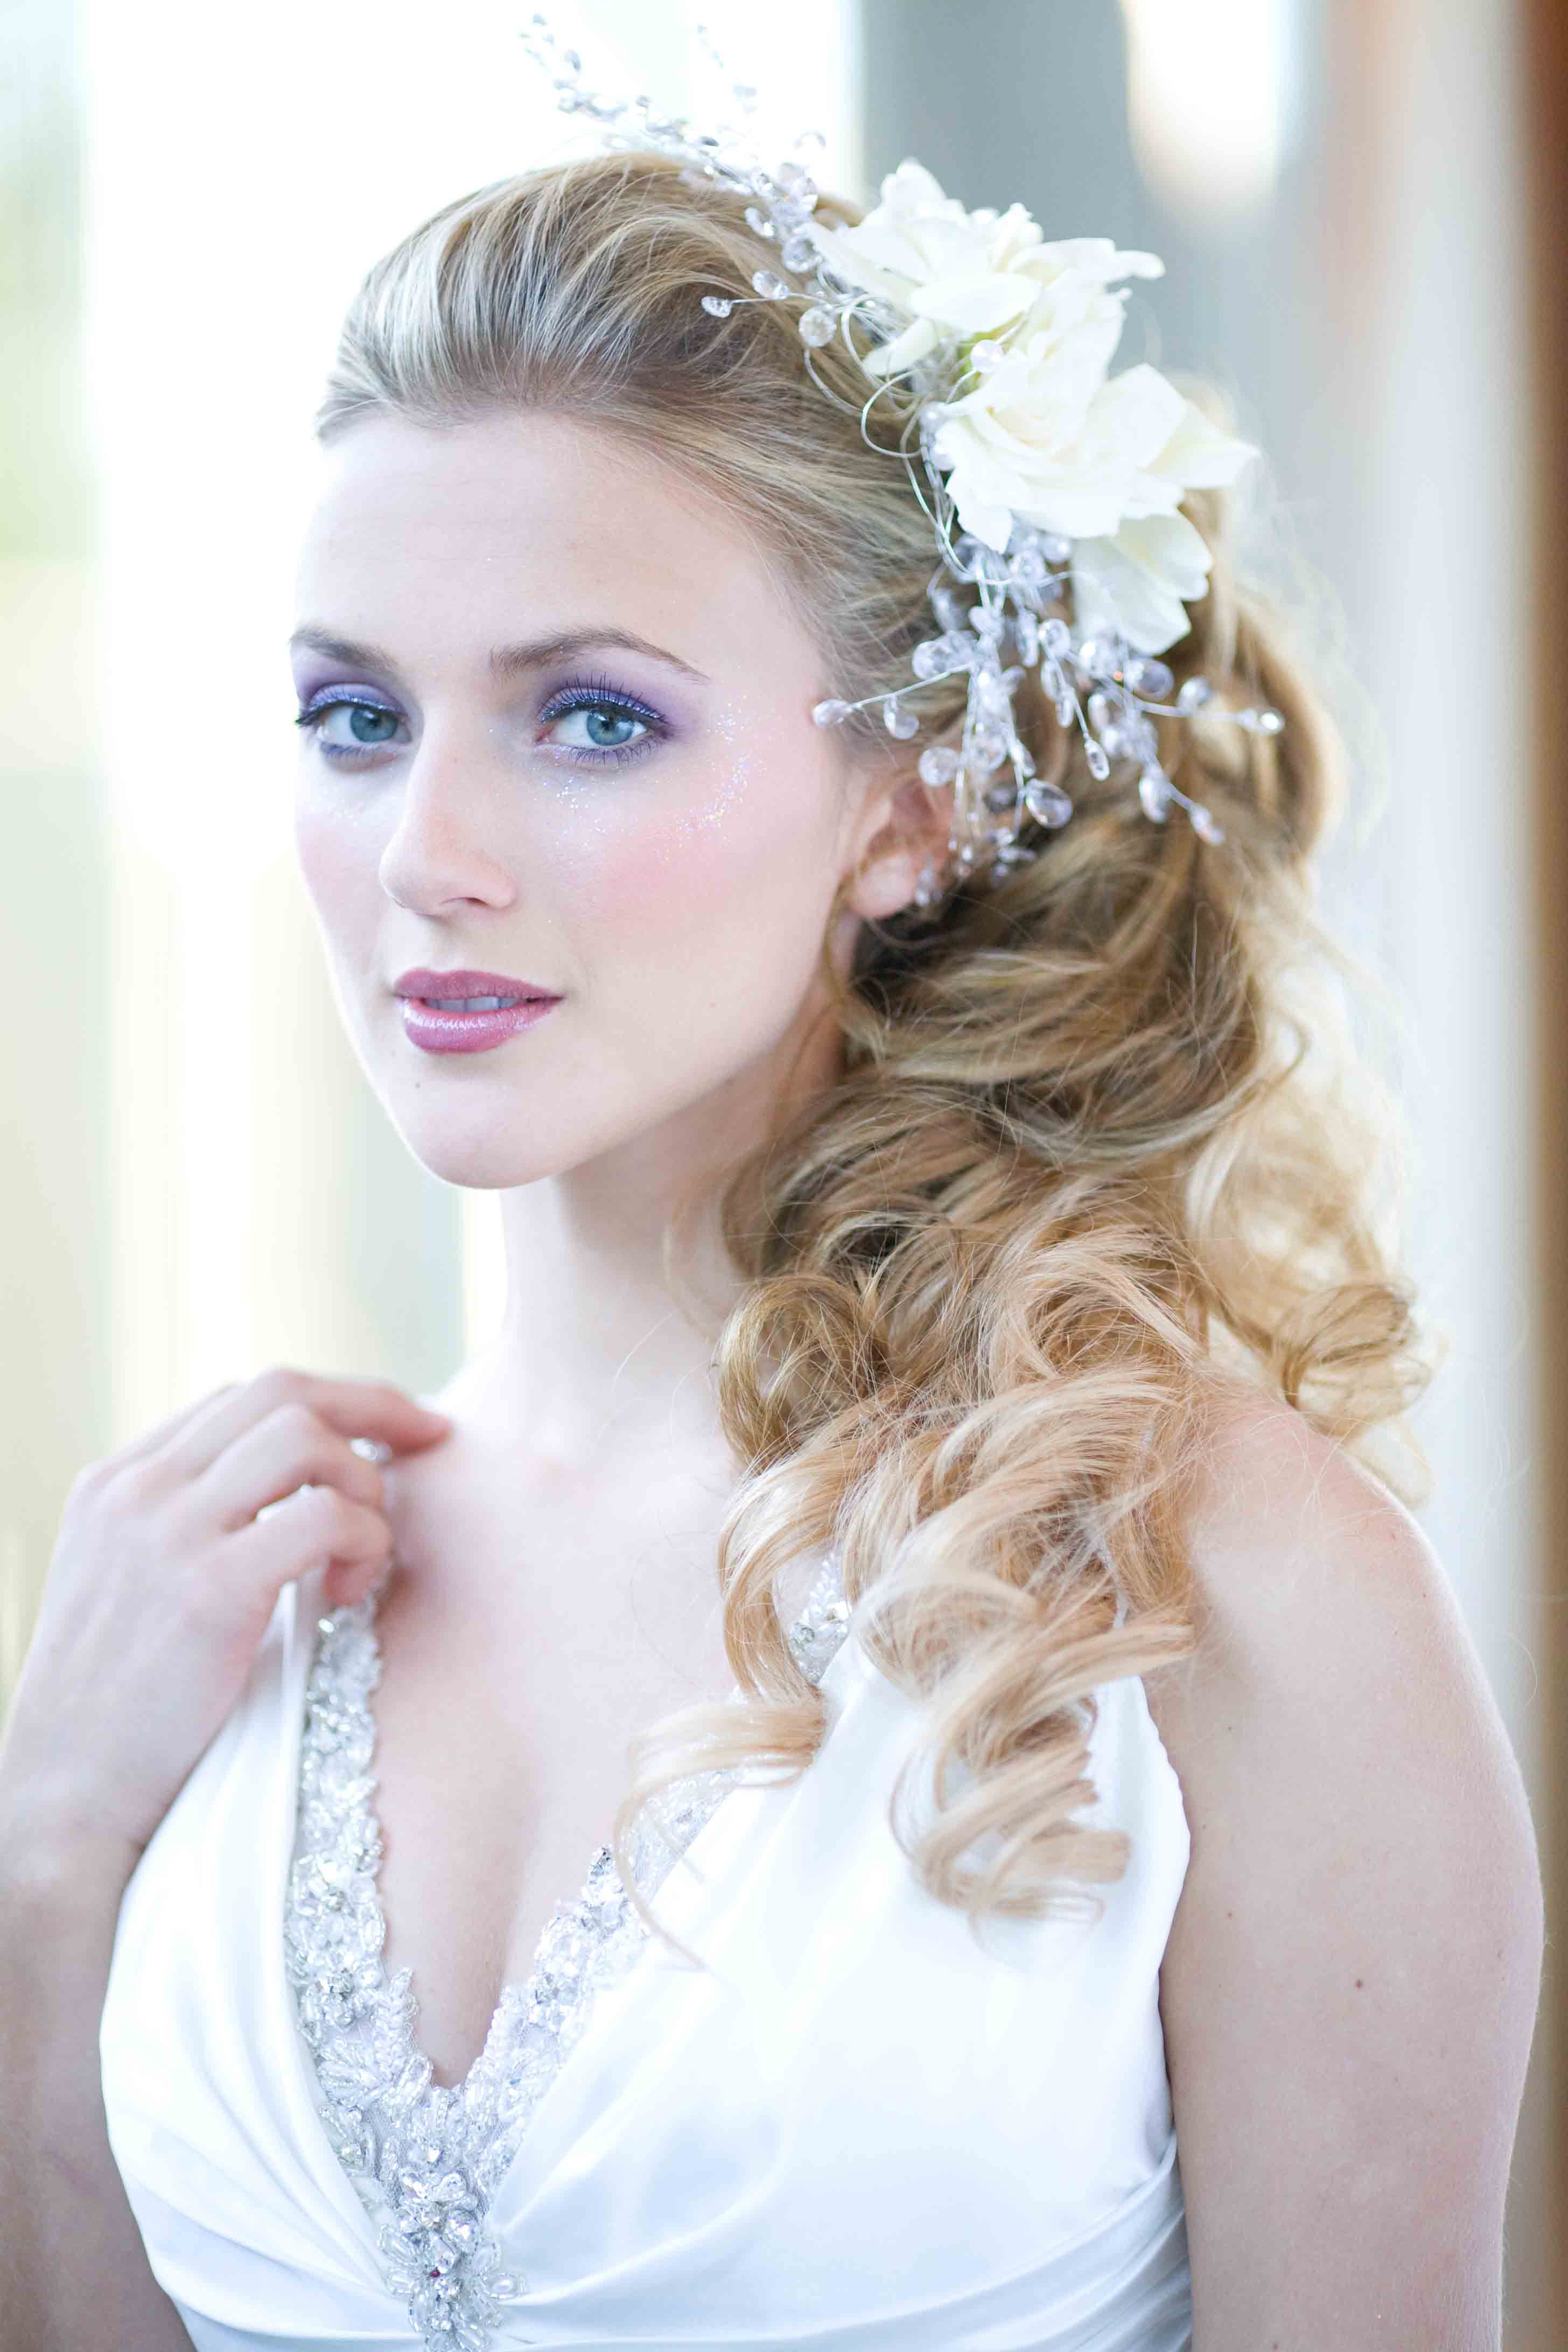 hair & makeup by tami scott for st. louis bride magazine